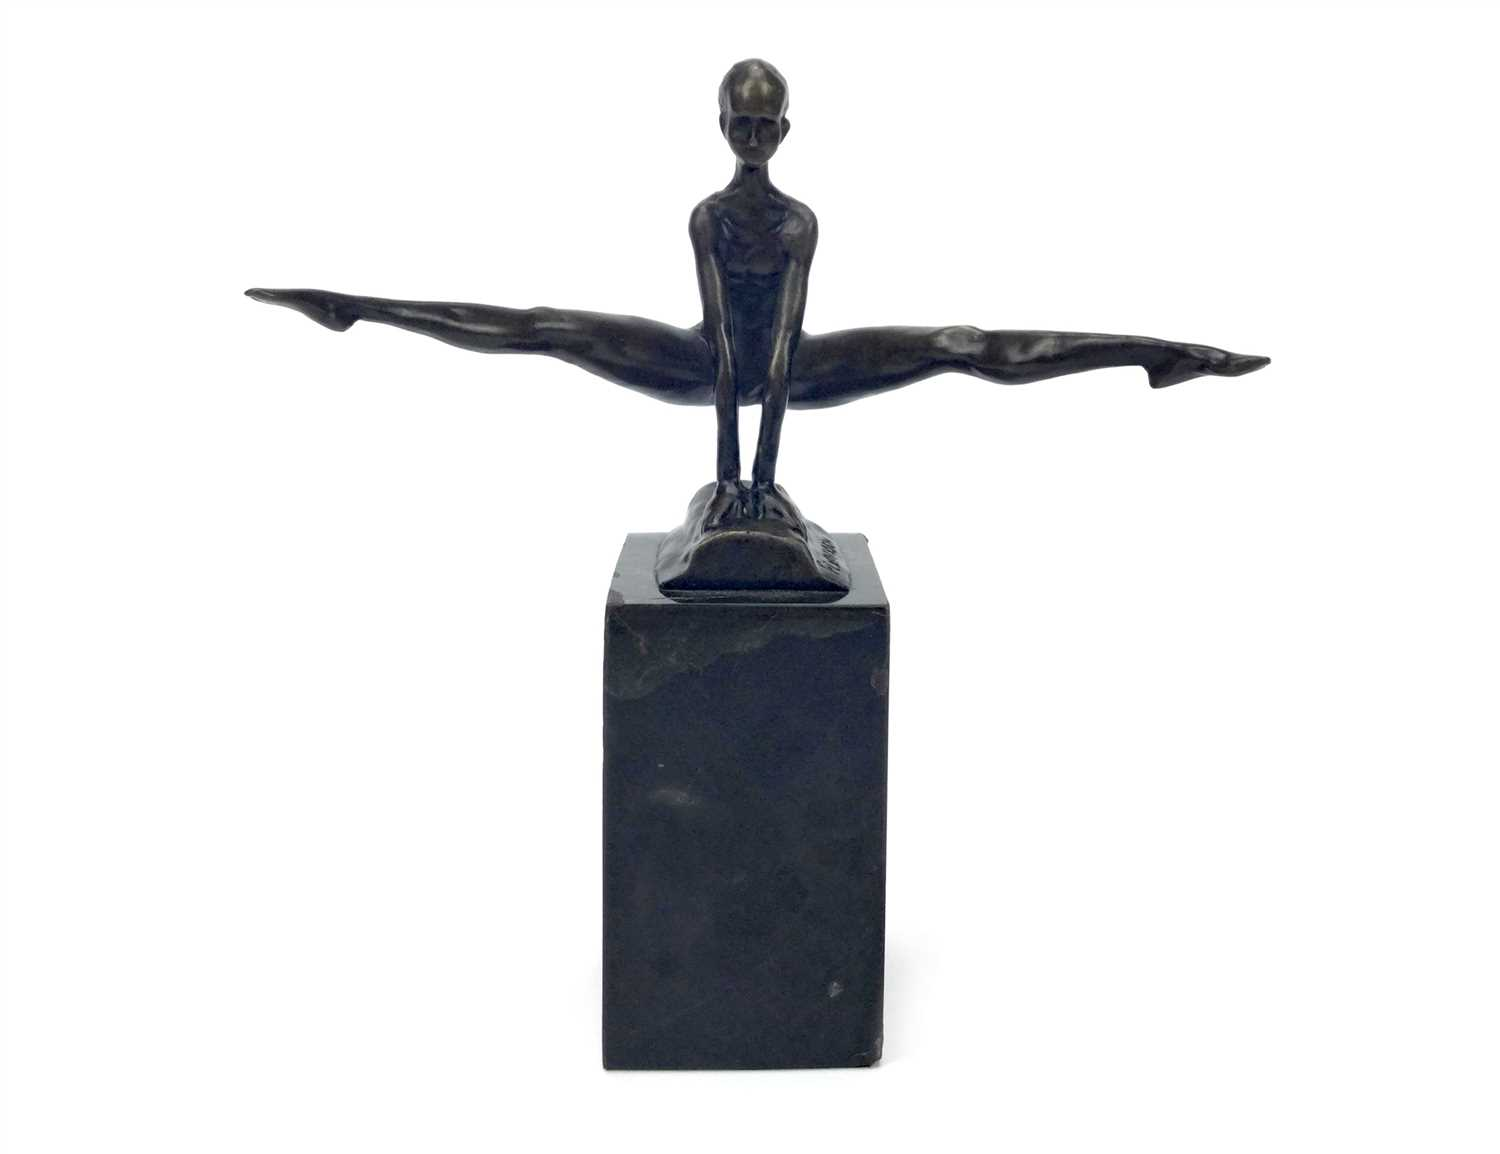 Lot 1538-AFTER PIERRE FELIX FIX-MASSEAU BRONZE GYMNAST